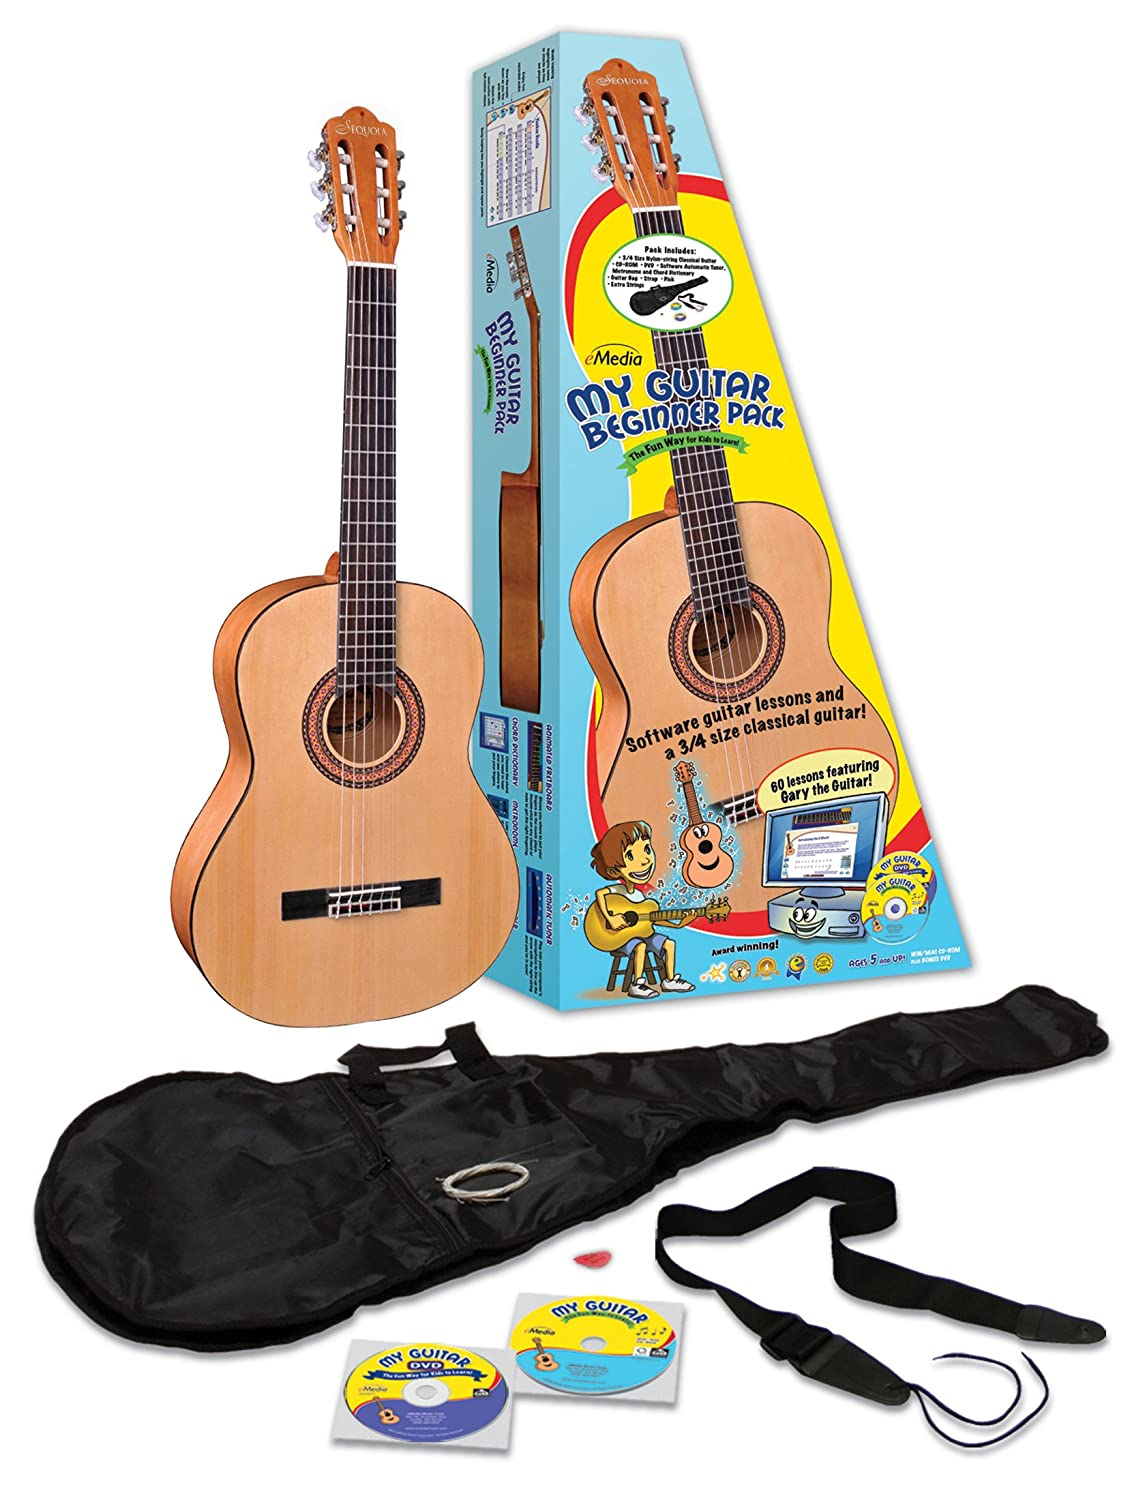 eMedia EG11131 3/4 Size My Guitar Beginner Acoustic Guitar Pack for Kids, Sequoia